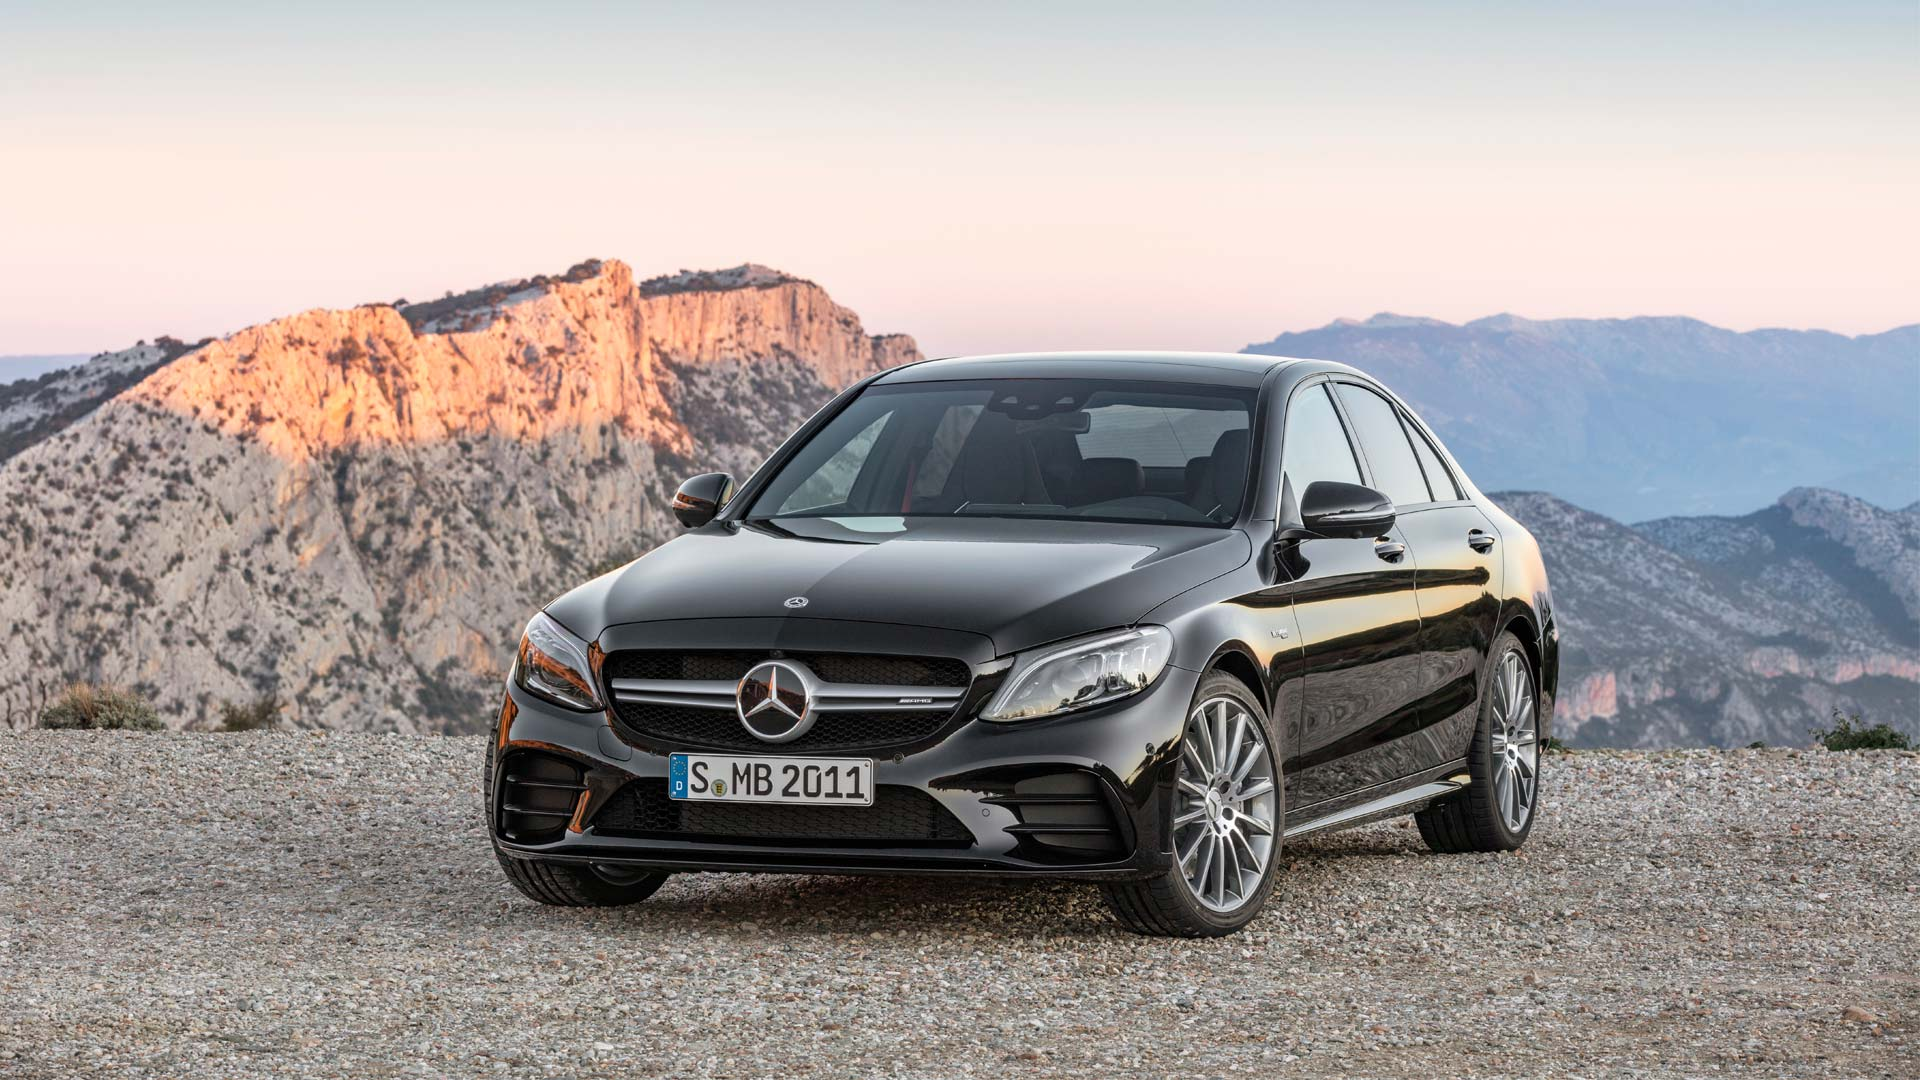 2018-Mercedes-AMG-C-43-4Matic_3